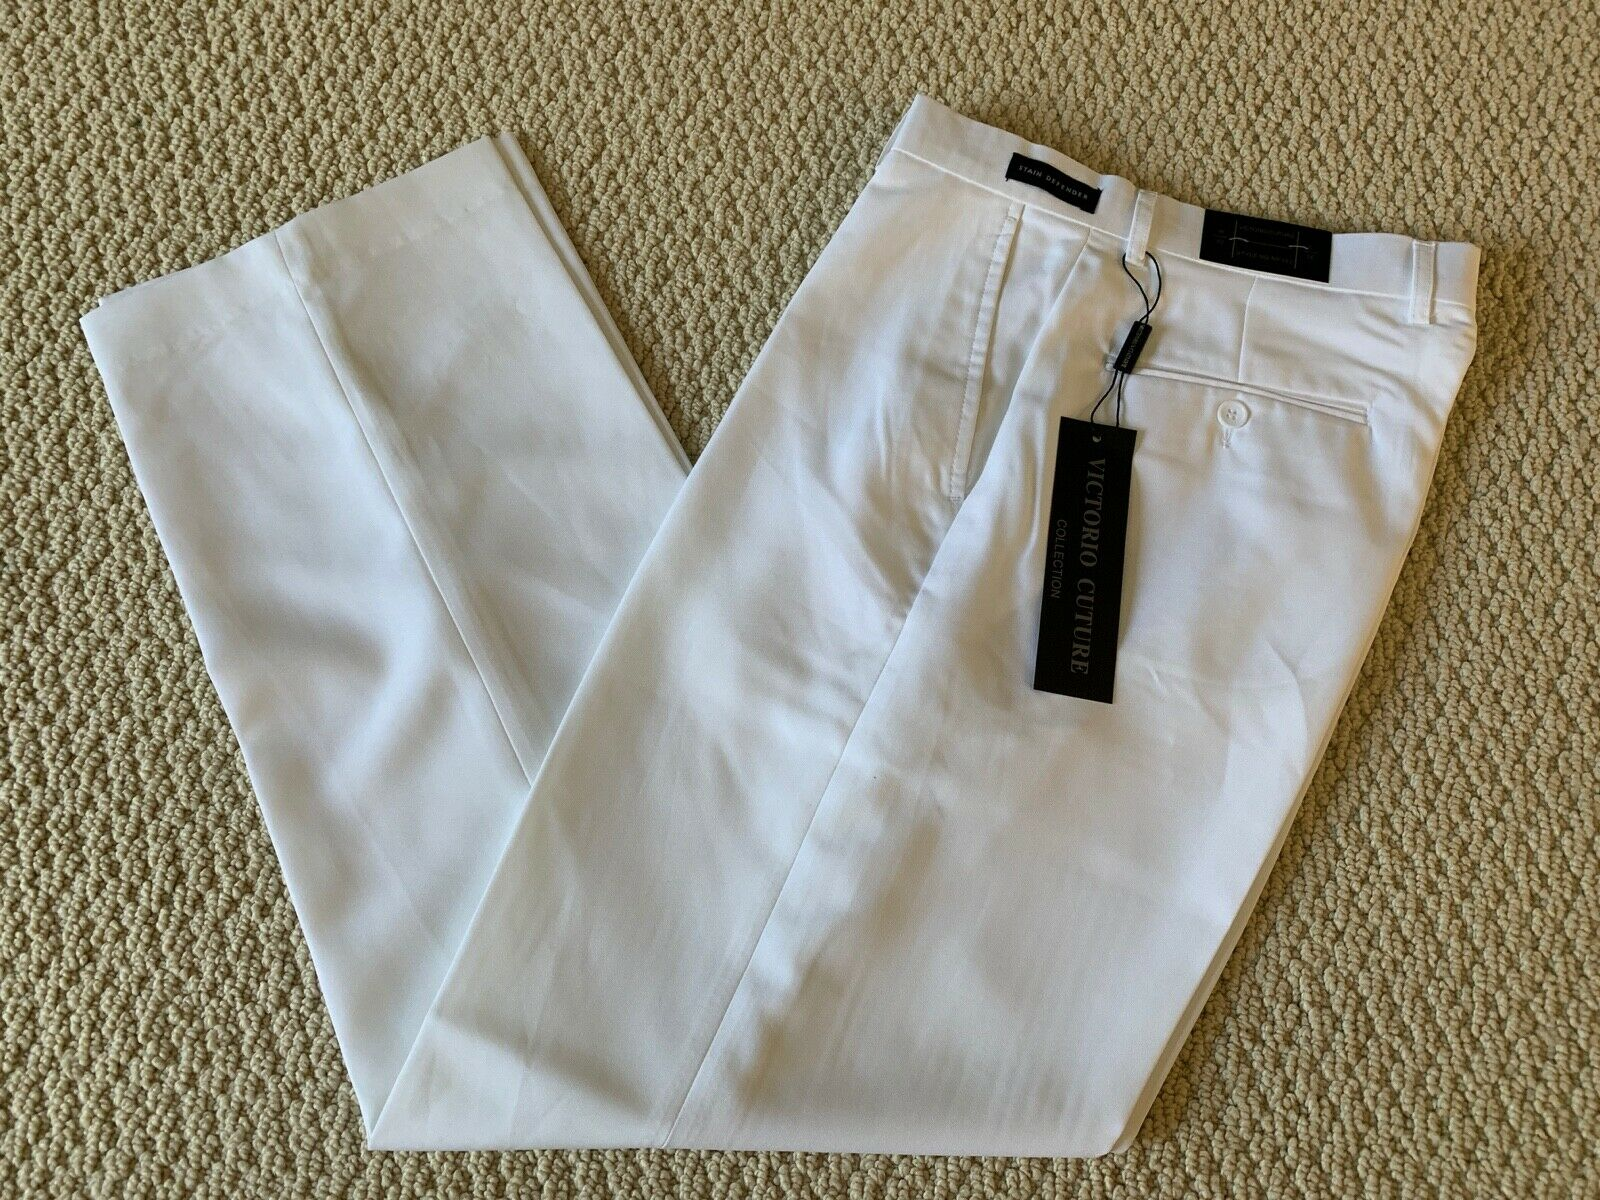 NWT Men's Victorio Cuture White Flat Front Dress Pants ALL S